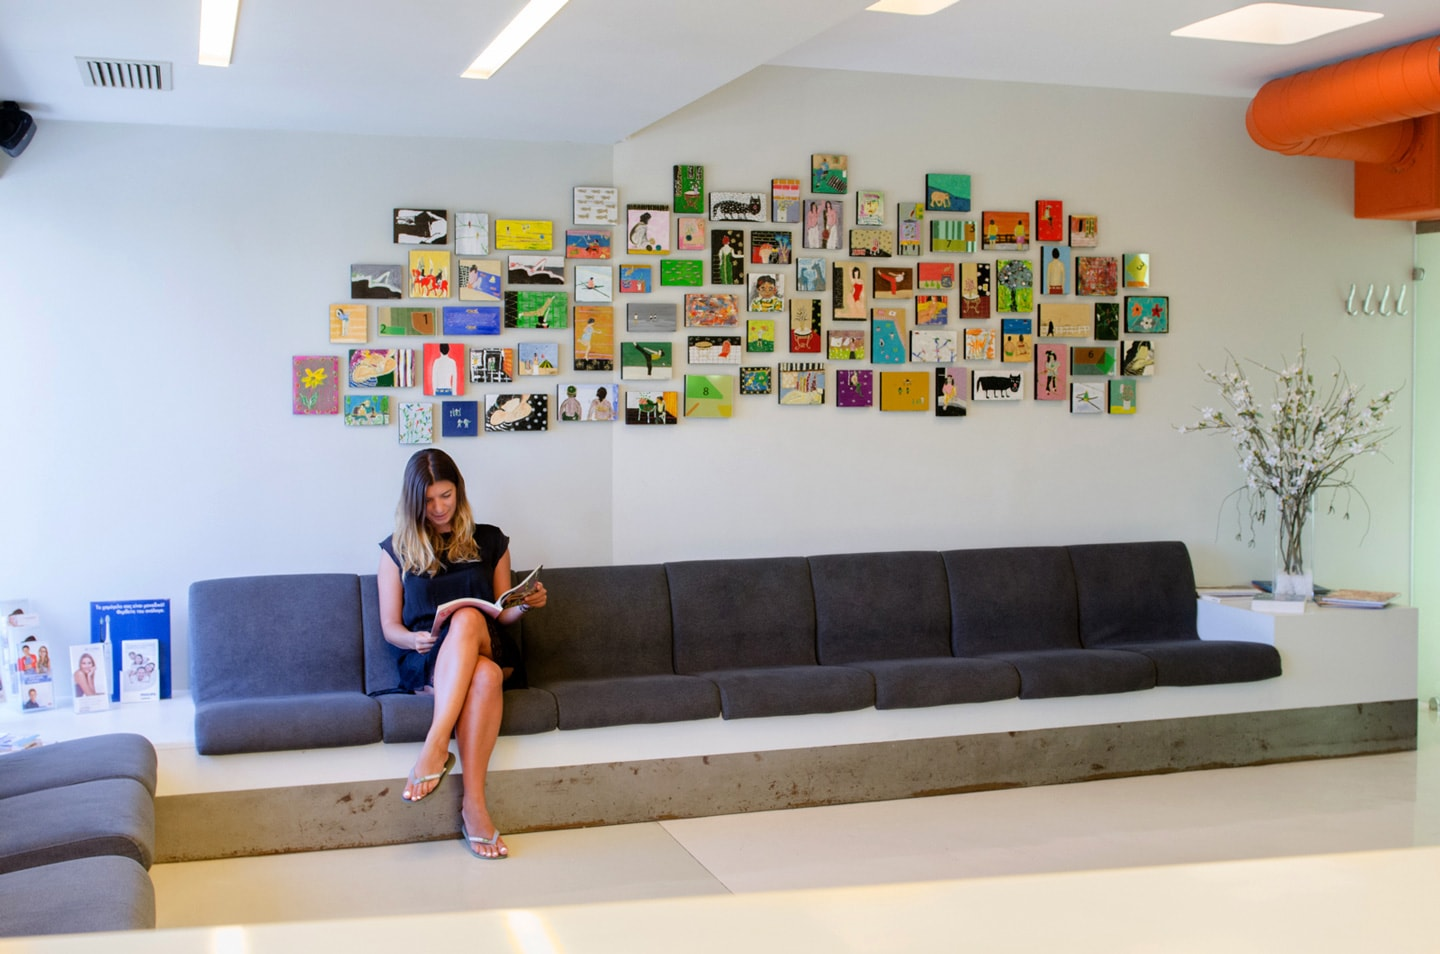 Lady waits for orthodontic treatment in the Sanoudos Kapakian practice reception in Glyfada, Athens